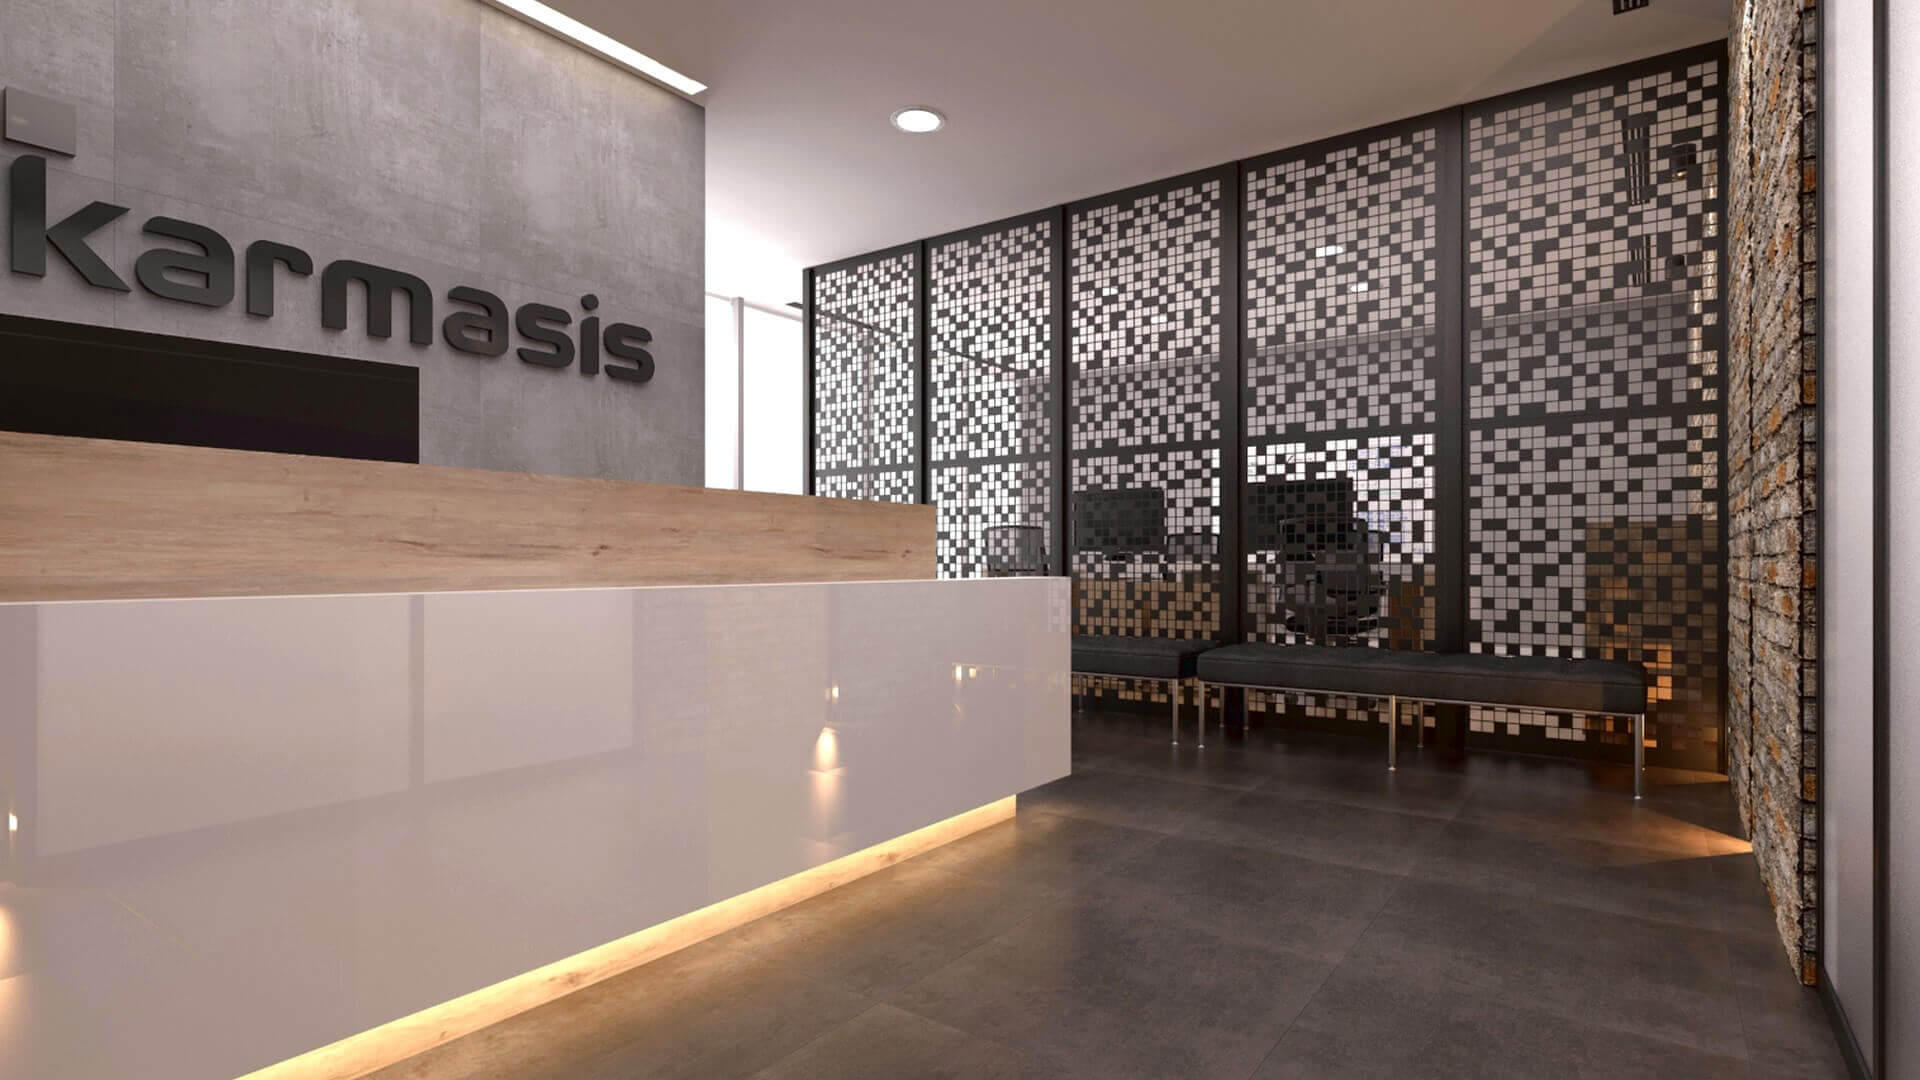 office design 2172 Karmasis Software Offices